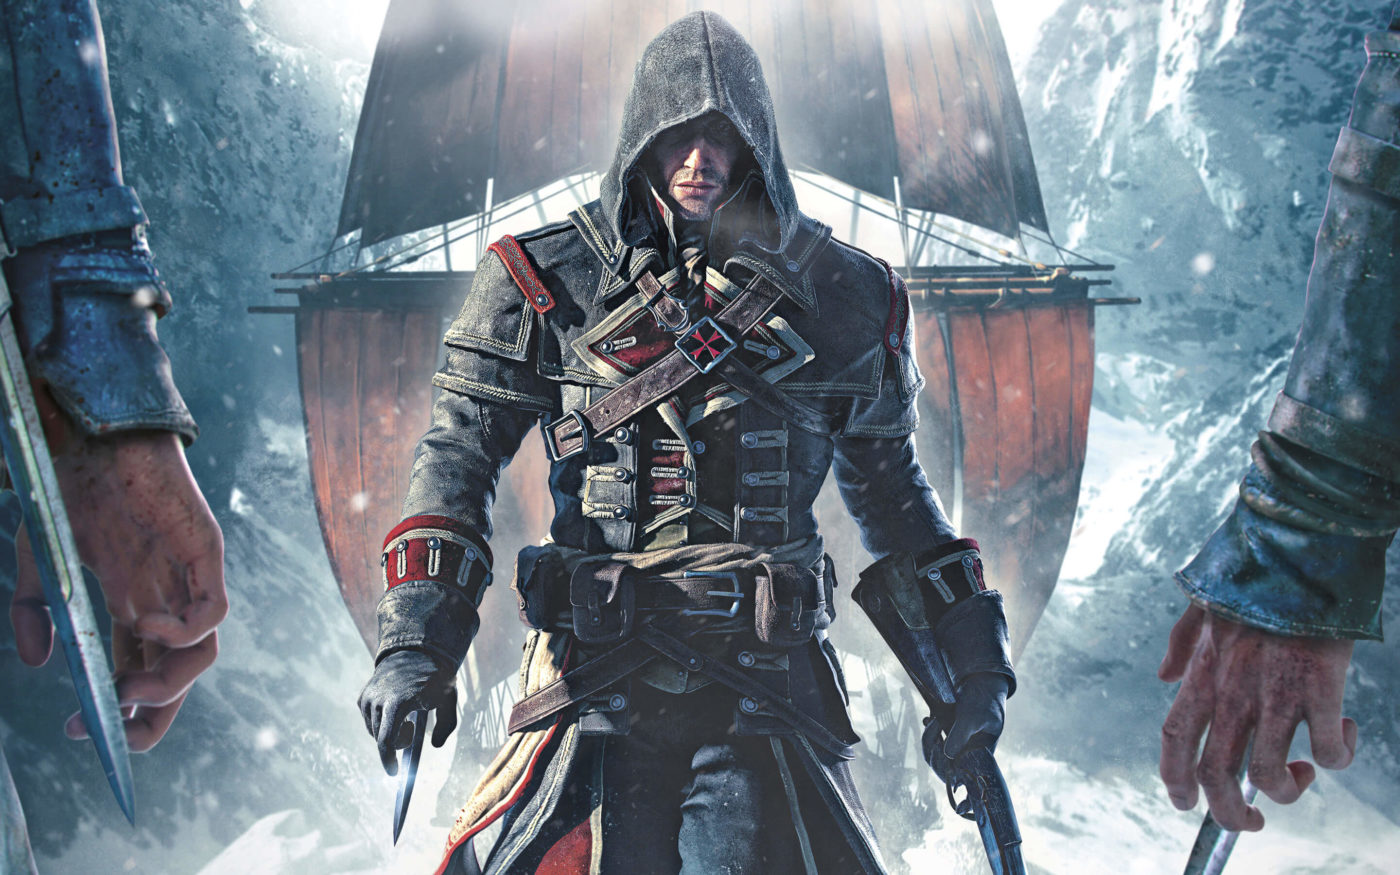 Assassin's Creed 2019 is Allegedly Set in Greece - Rumor